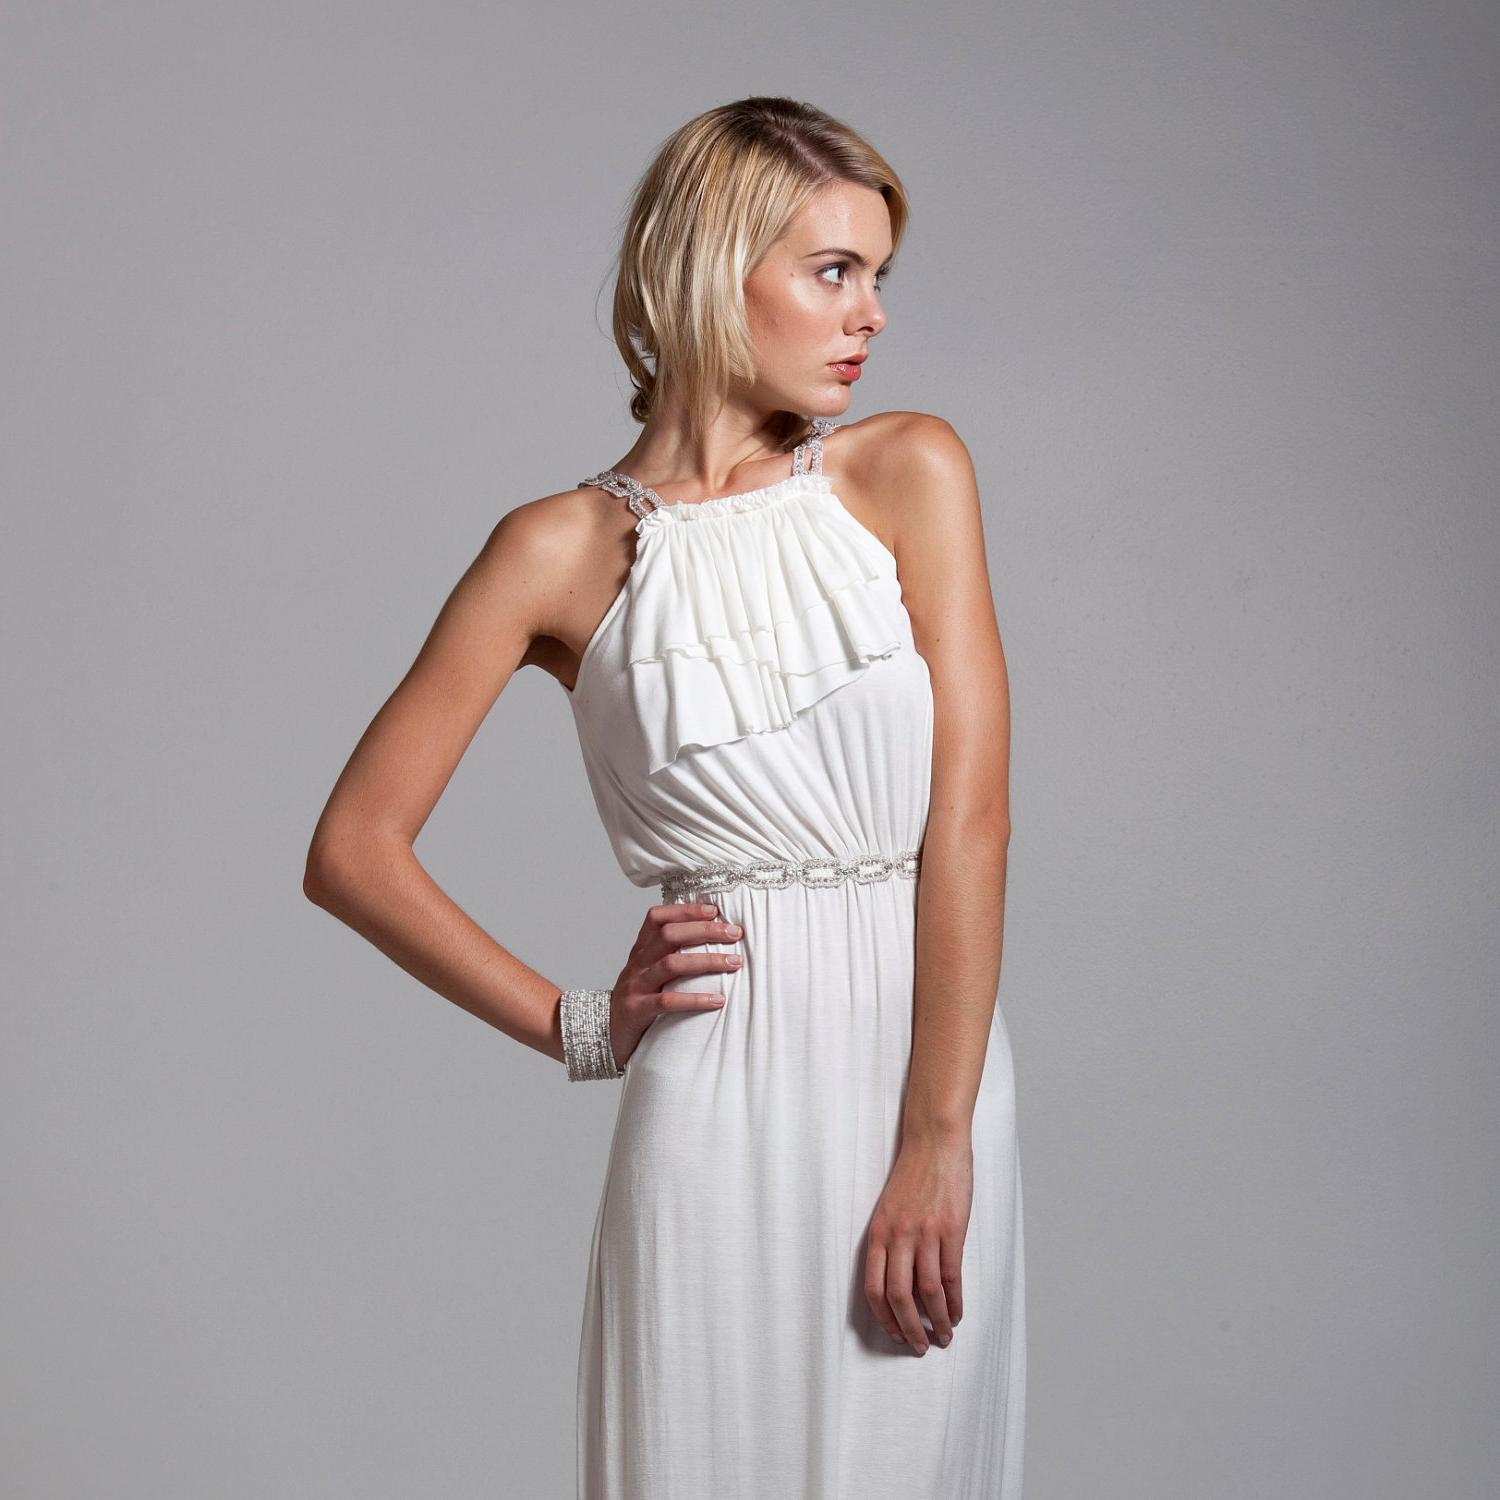 Goddess Ruffle wedding dress. From Th3rdPalac3